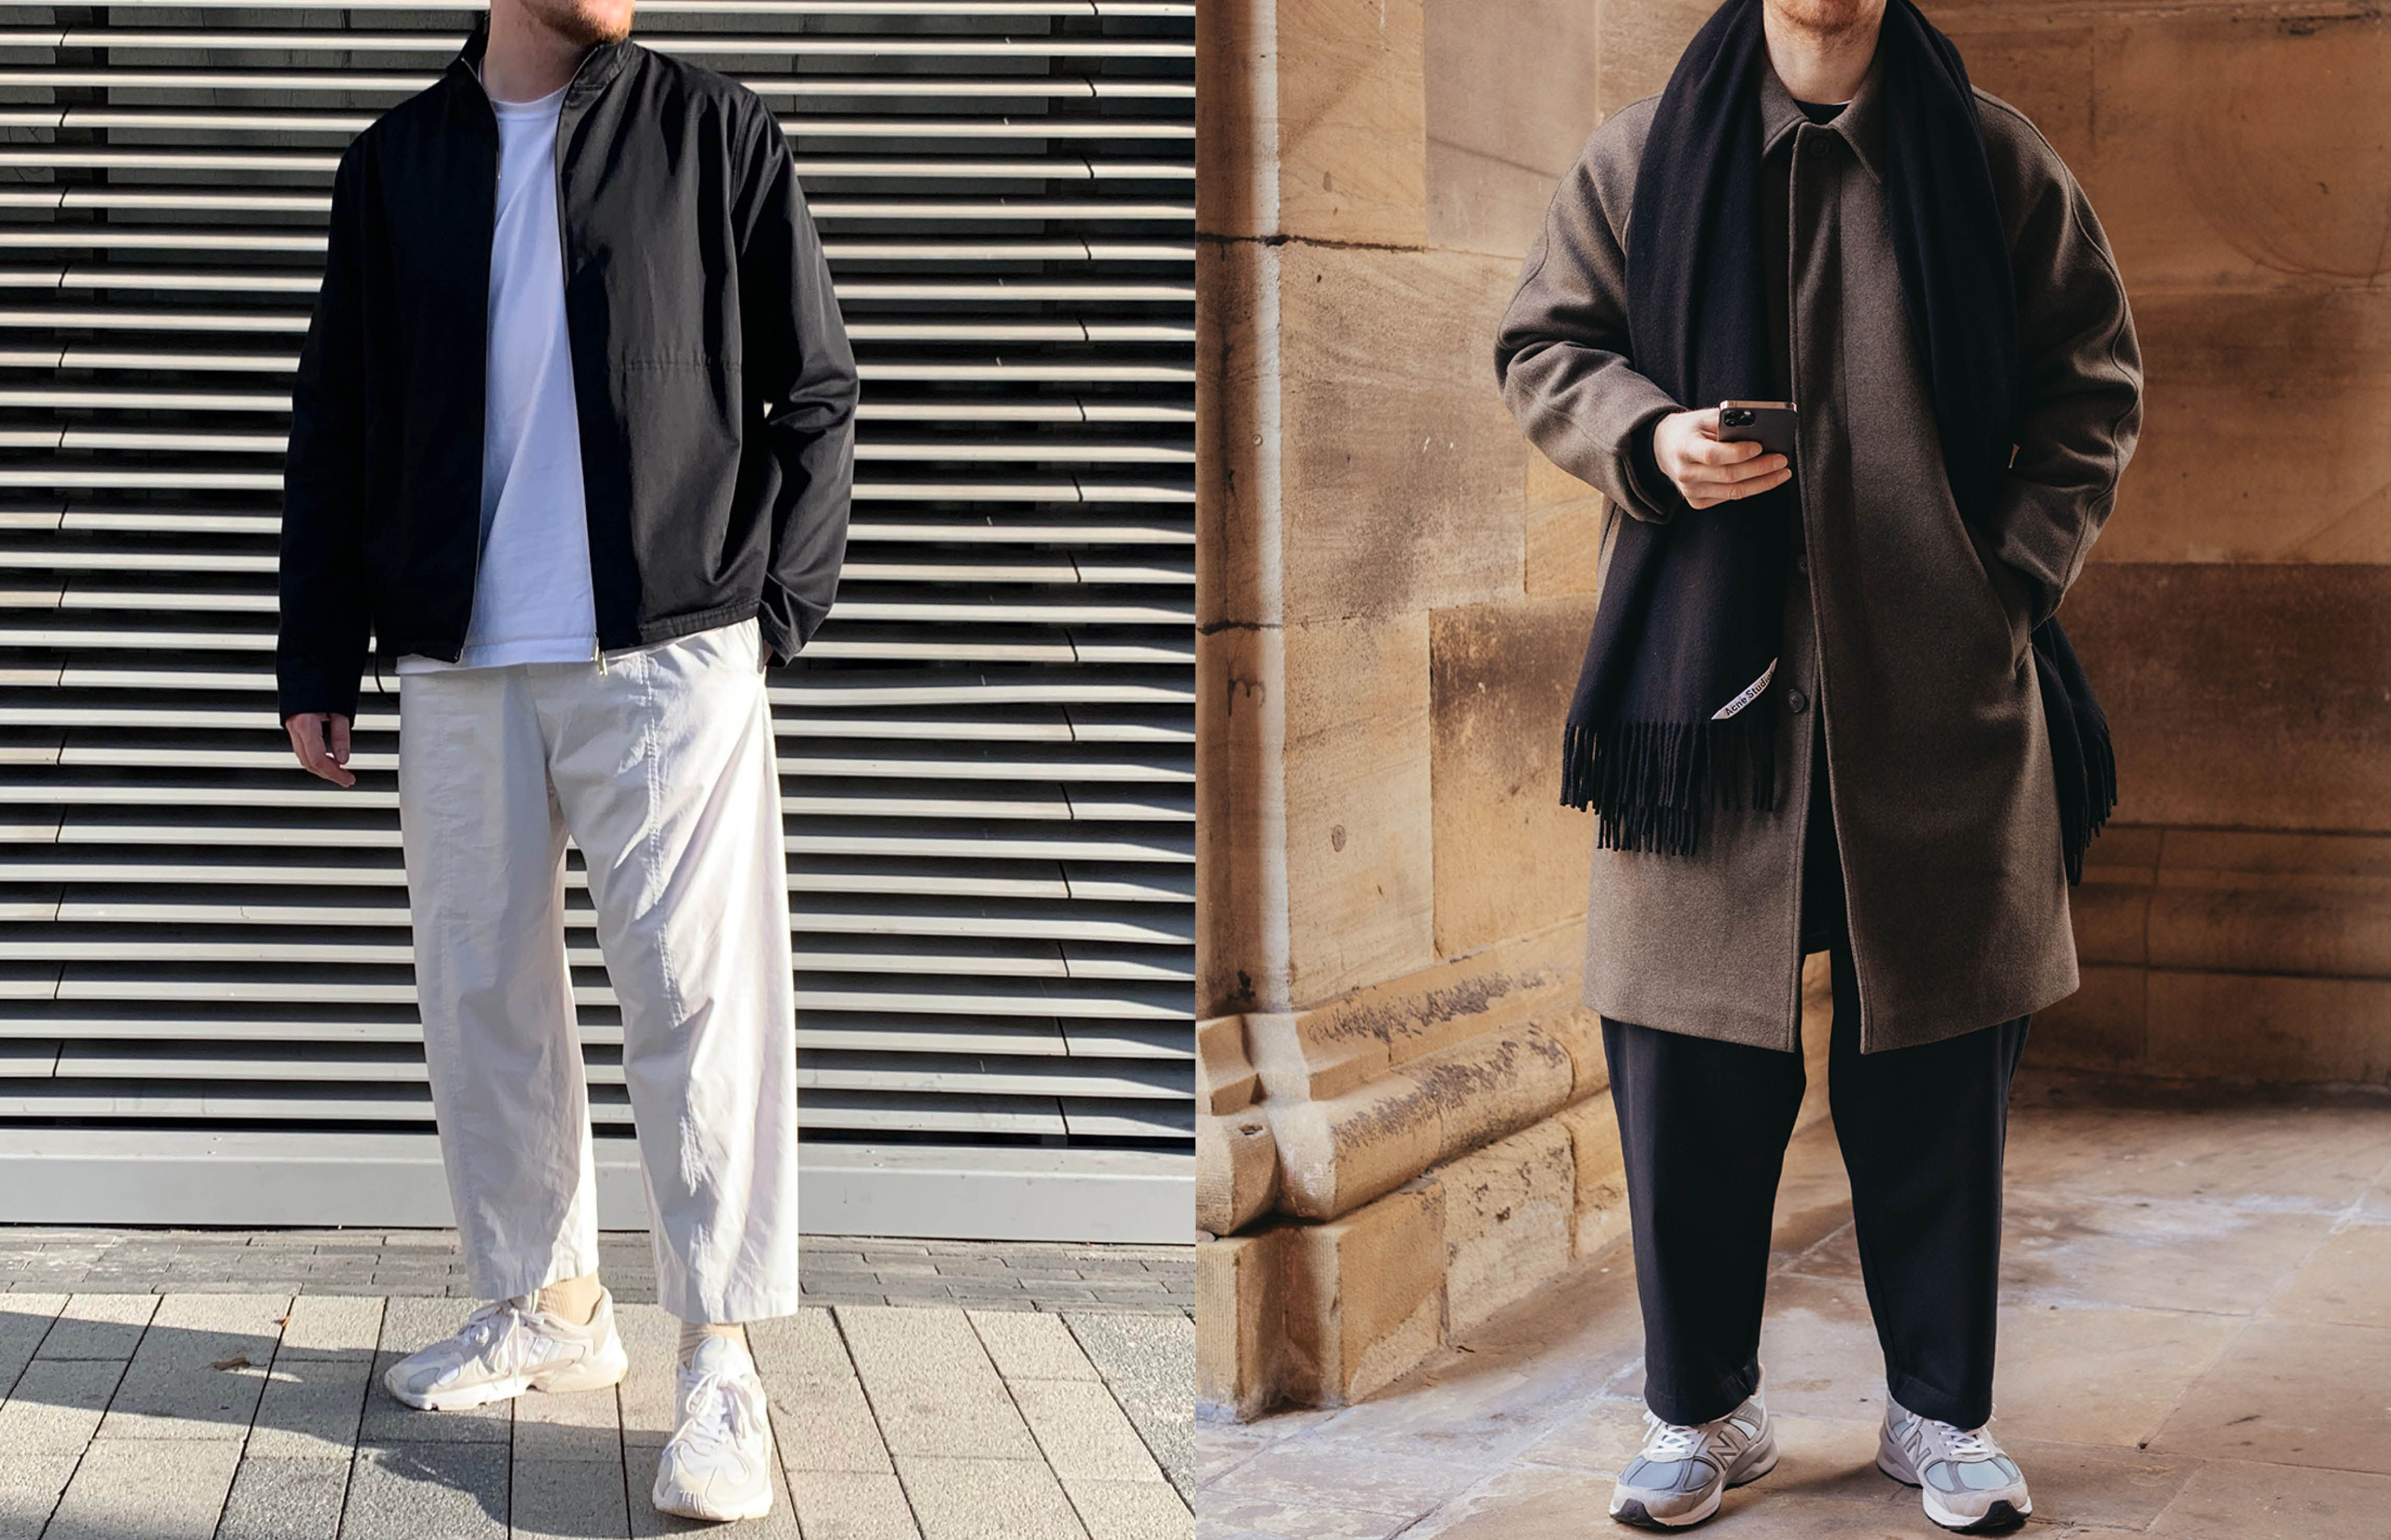 The dos and don'ts of oversized dressing